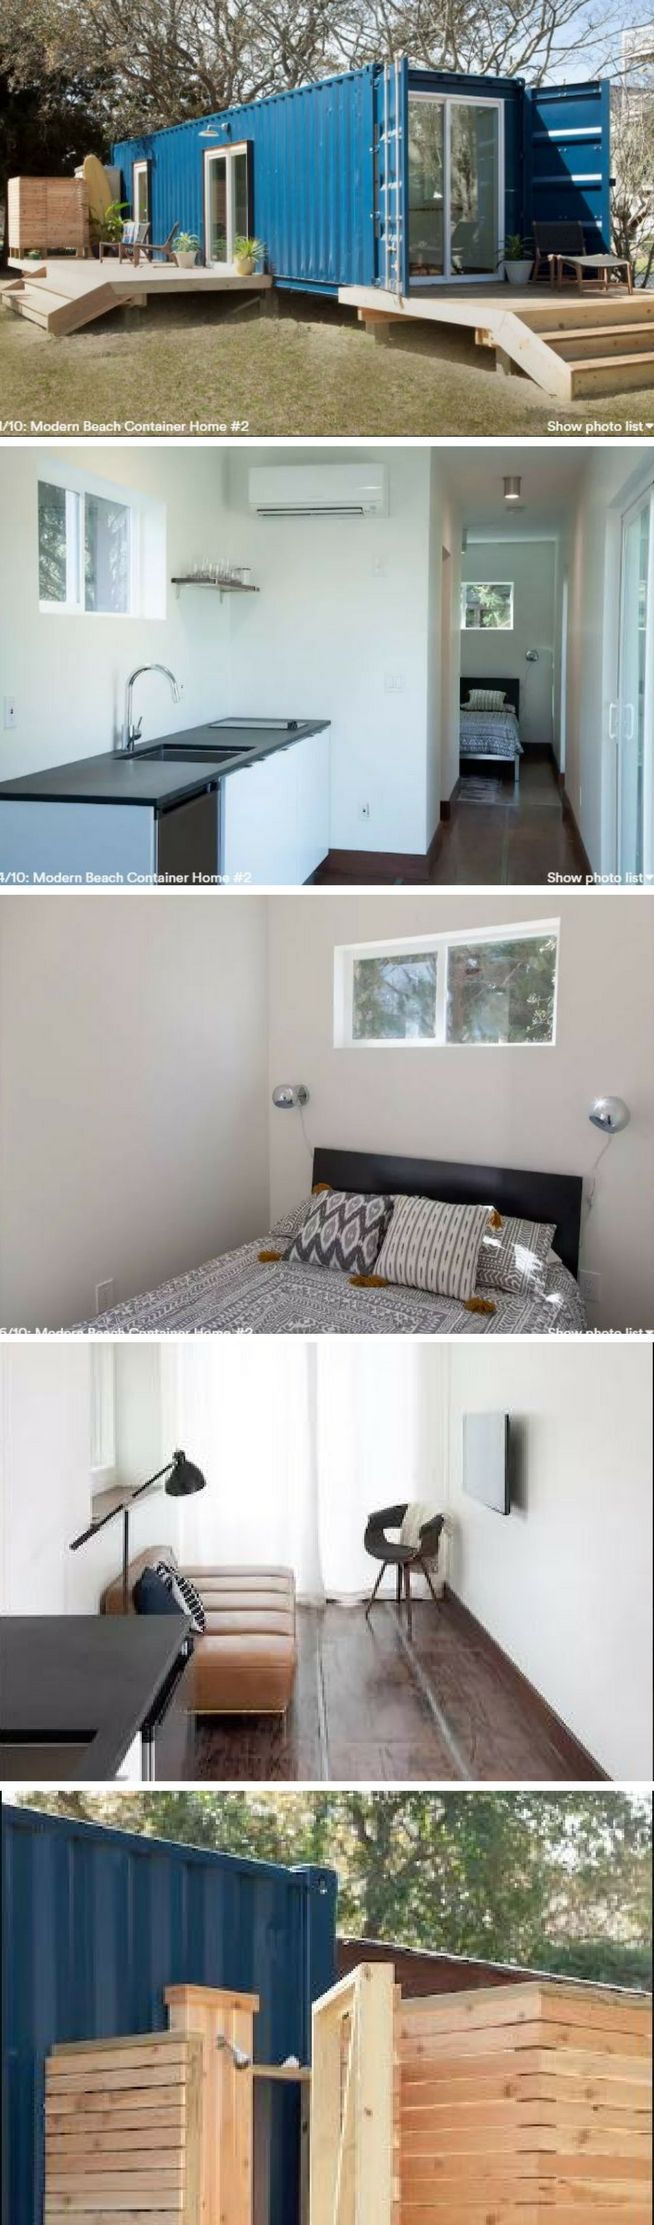 simple and minimalist shipping container home design plan